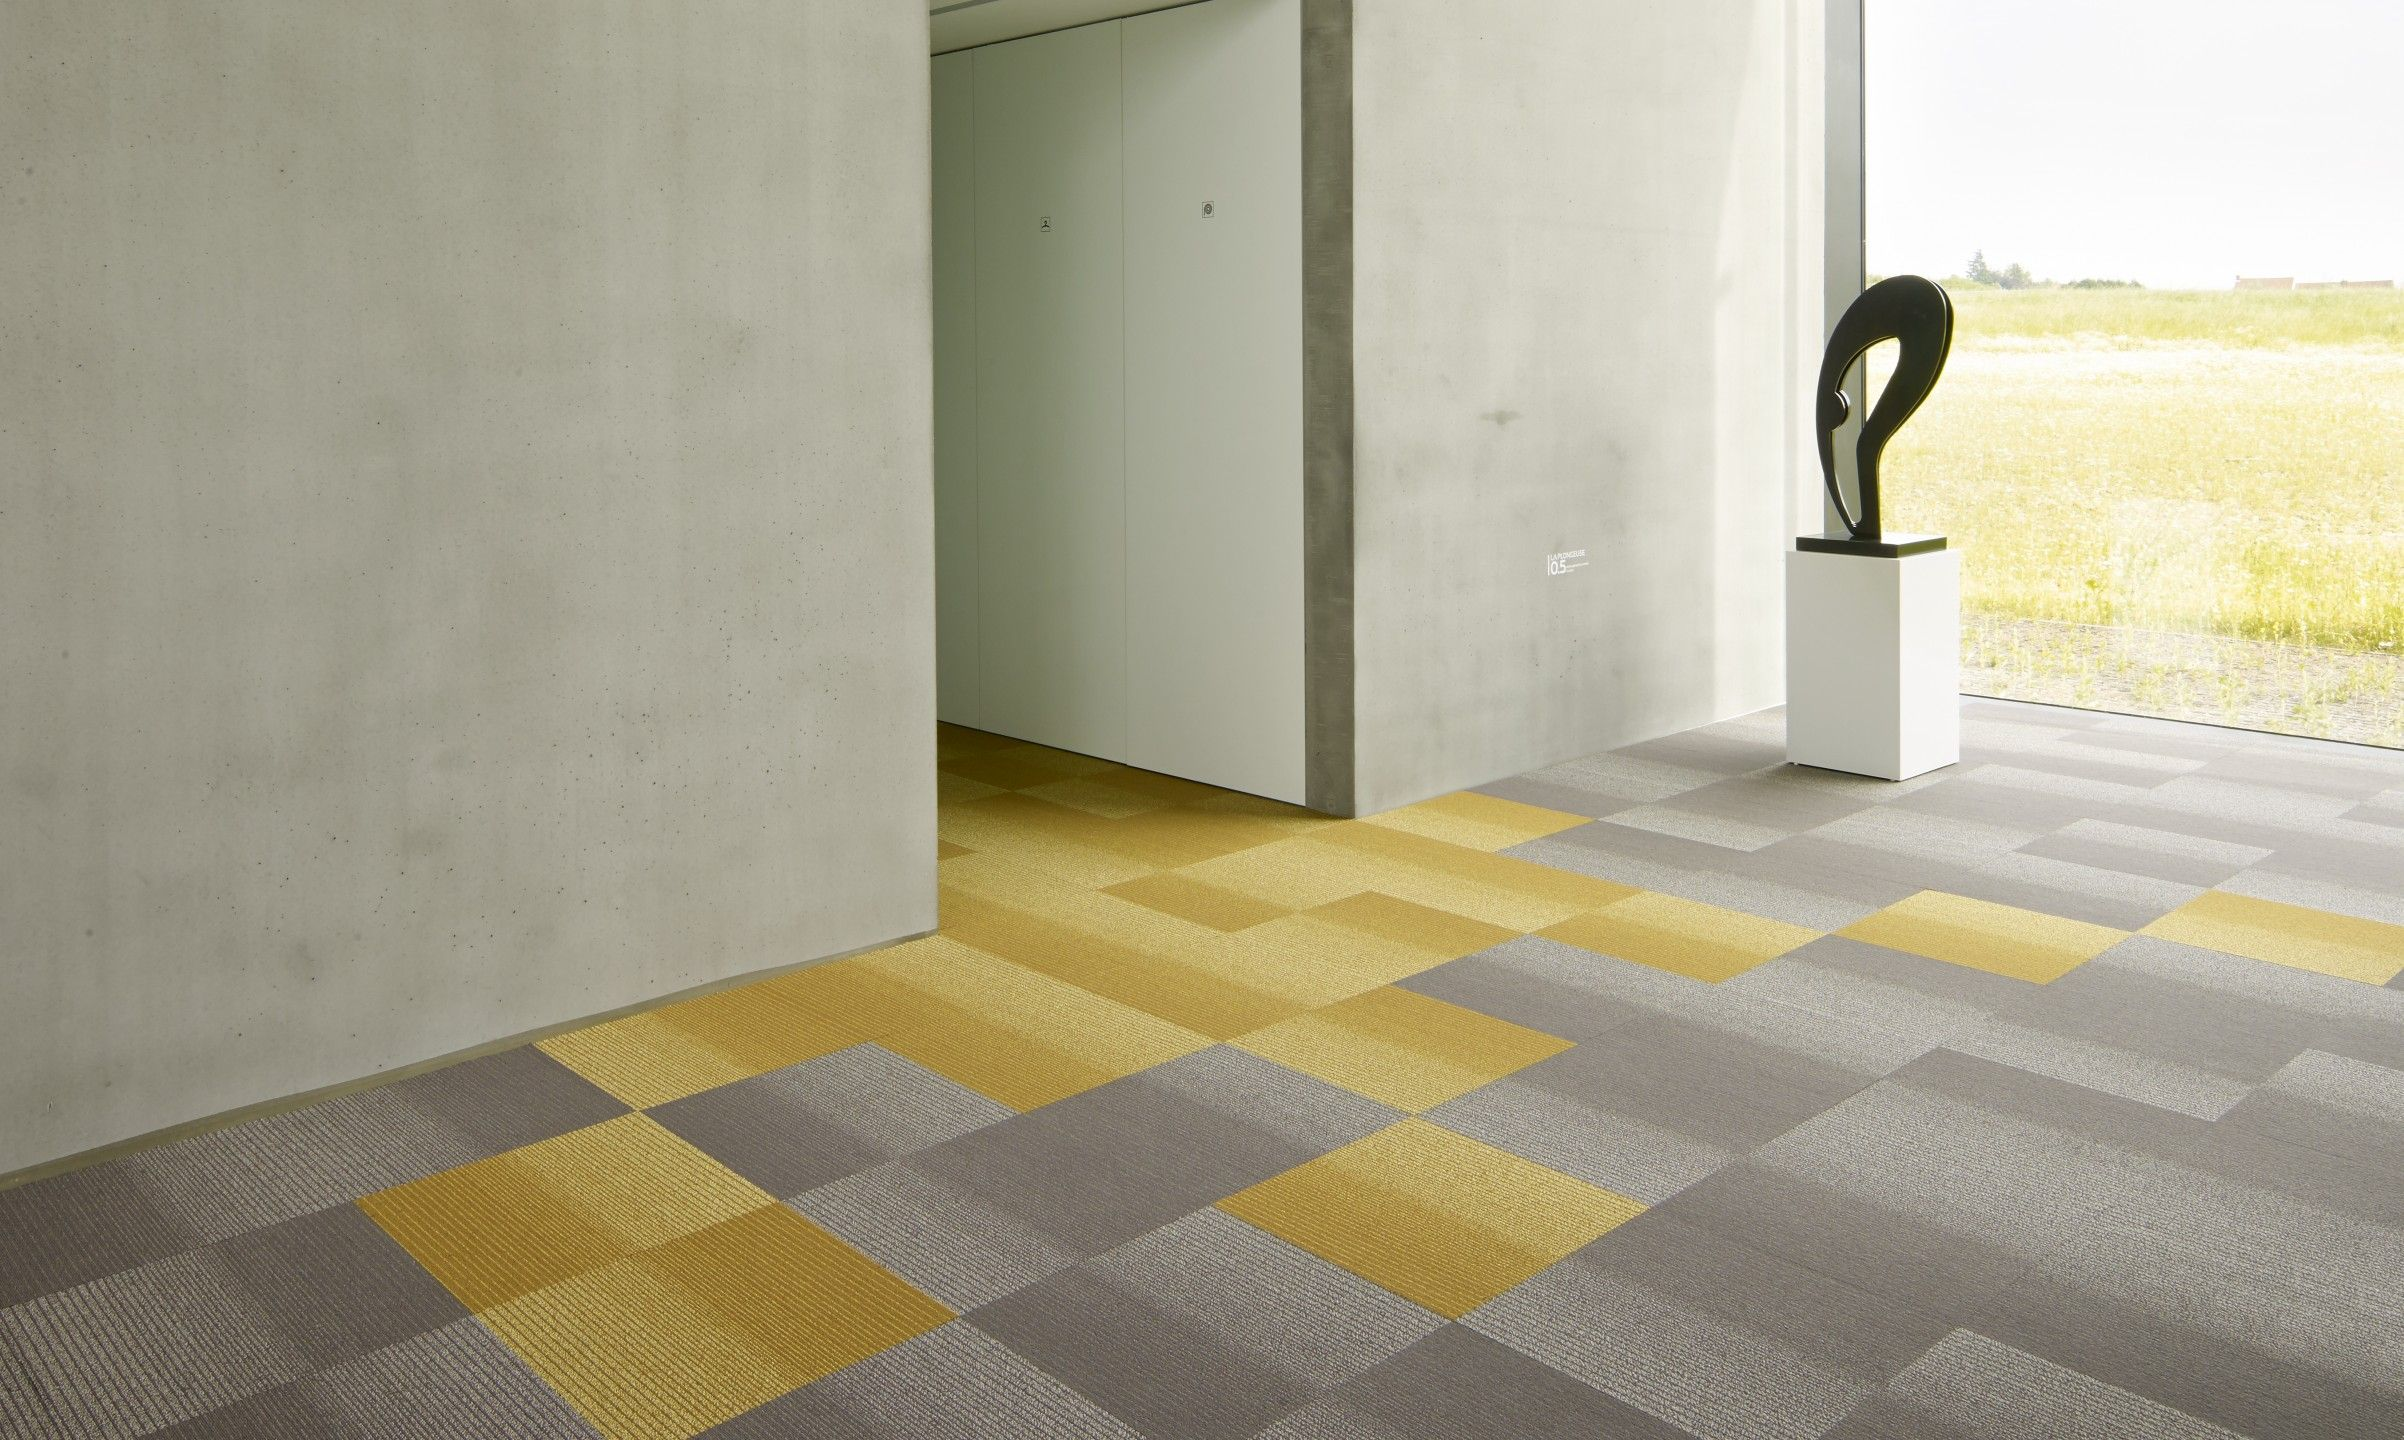 Commercial Carpet Suppliers, Office Carpet Tile: Selby